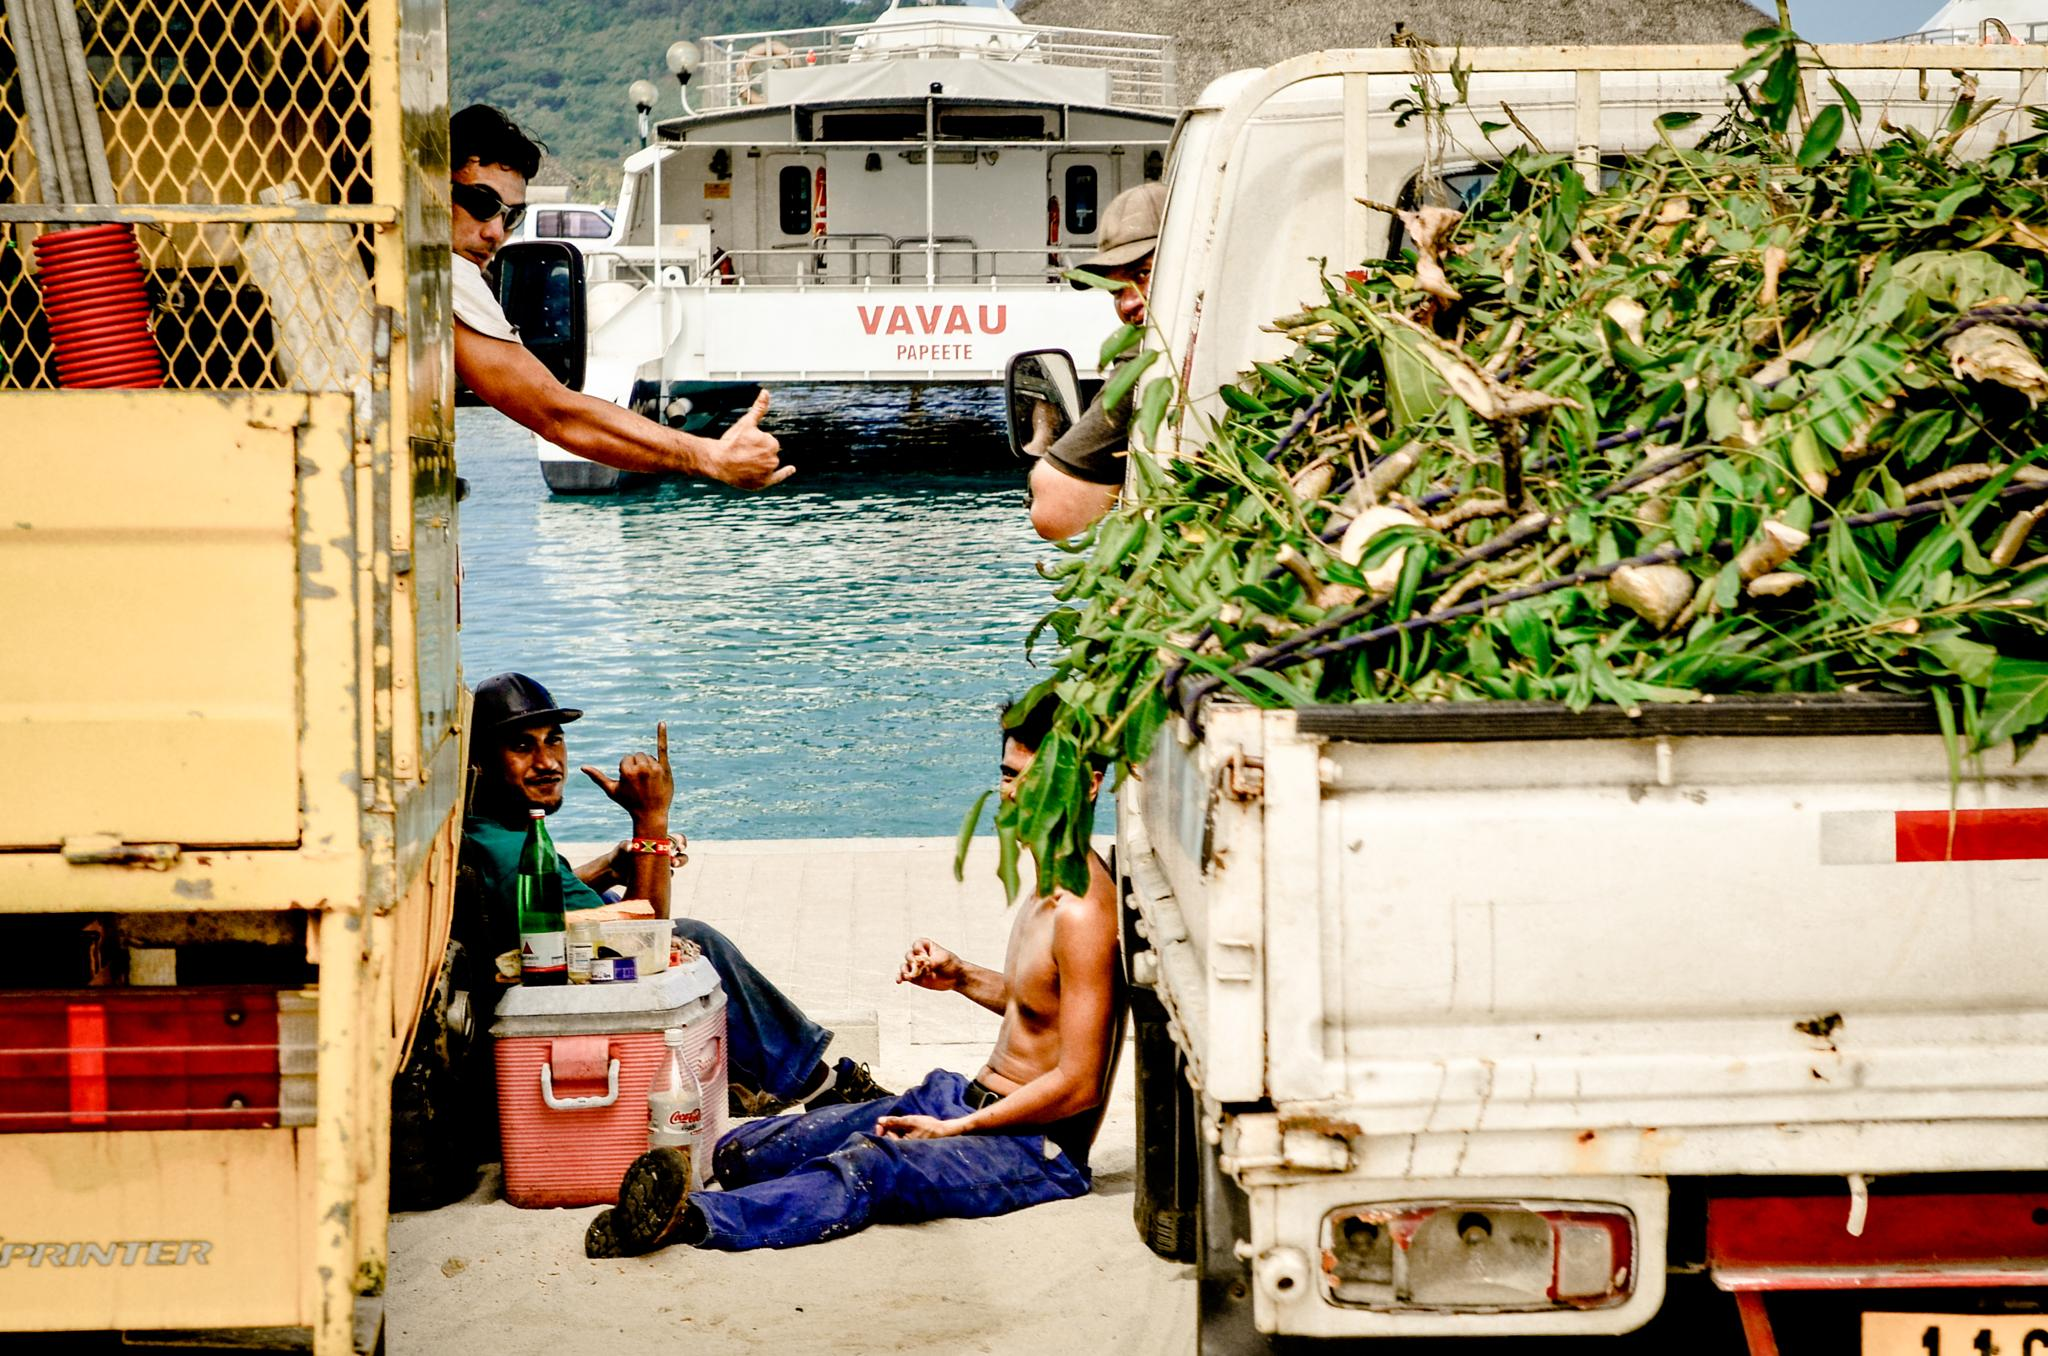 lunch break by Pasquale Panico